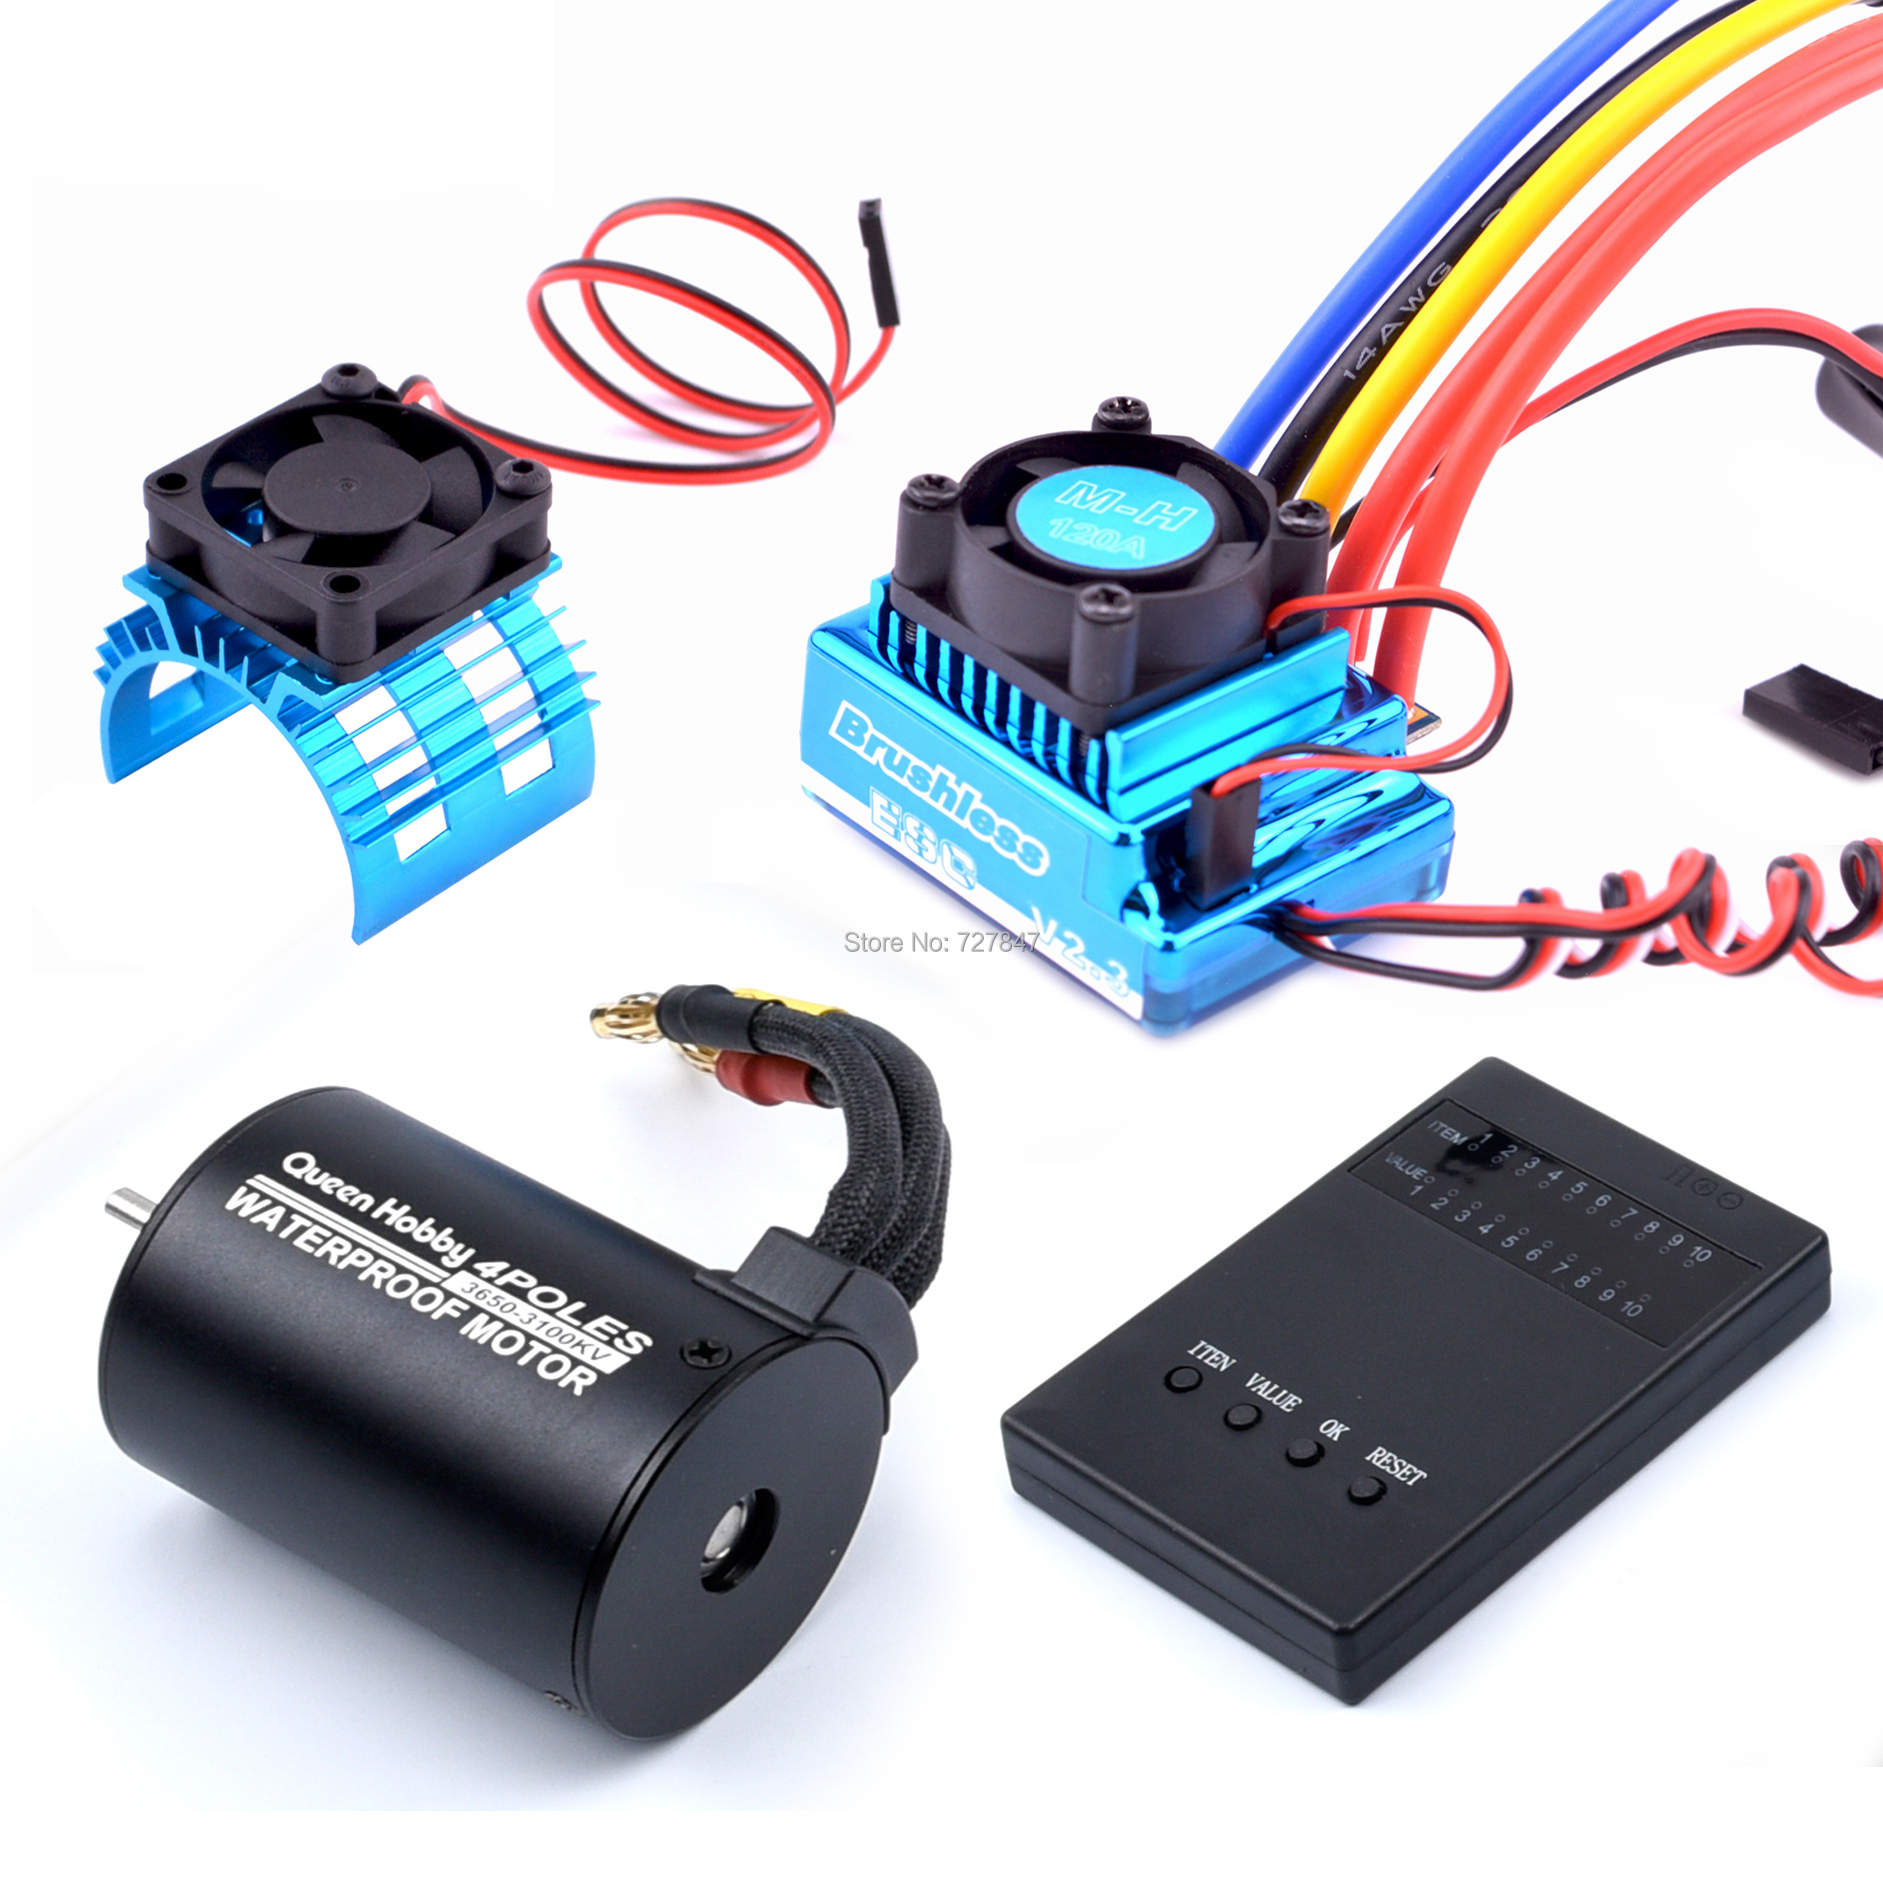 3650 3100KV Brushless Motor & 45A 60A 80A 120A Brushless ESC With Program Car Combo For 1:10 RC Car RC Boat Part